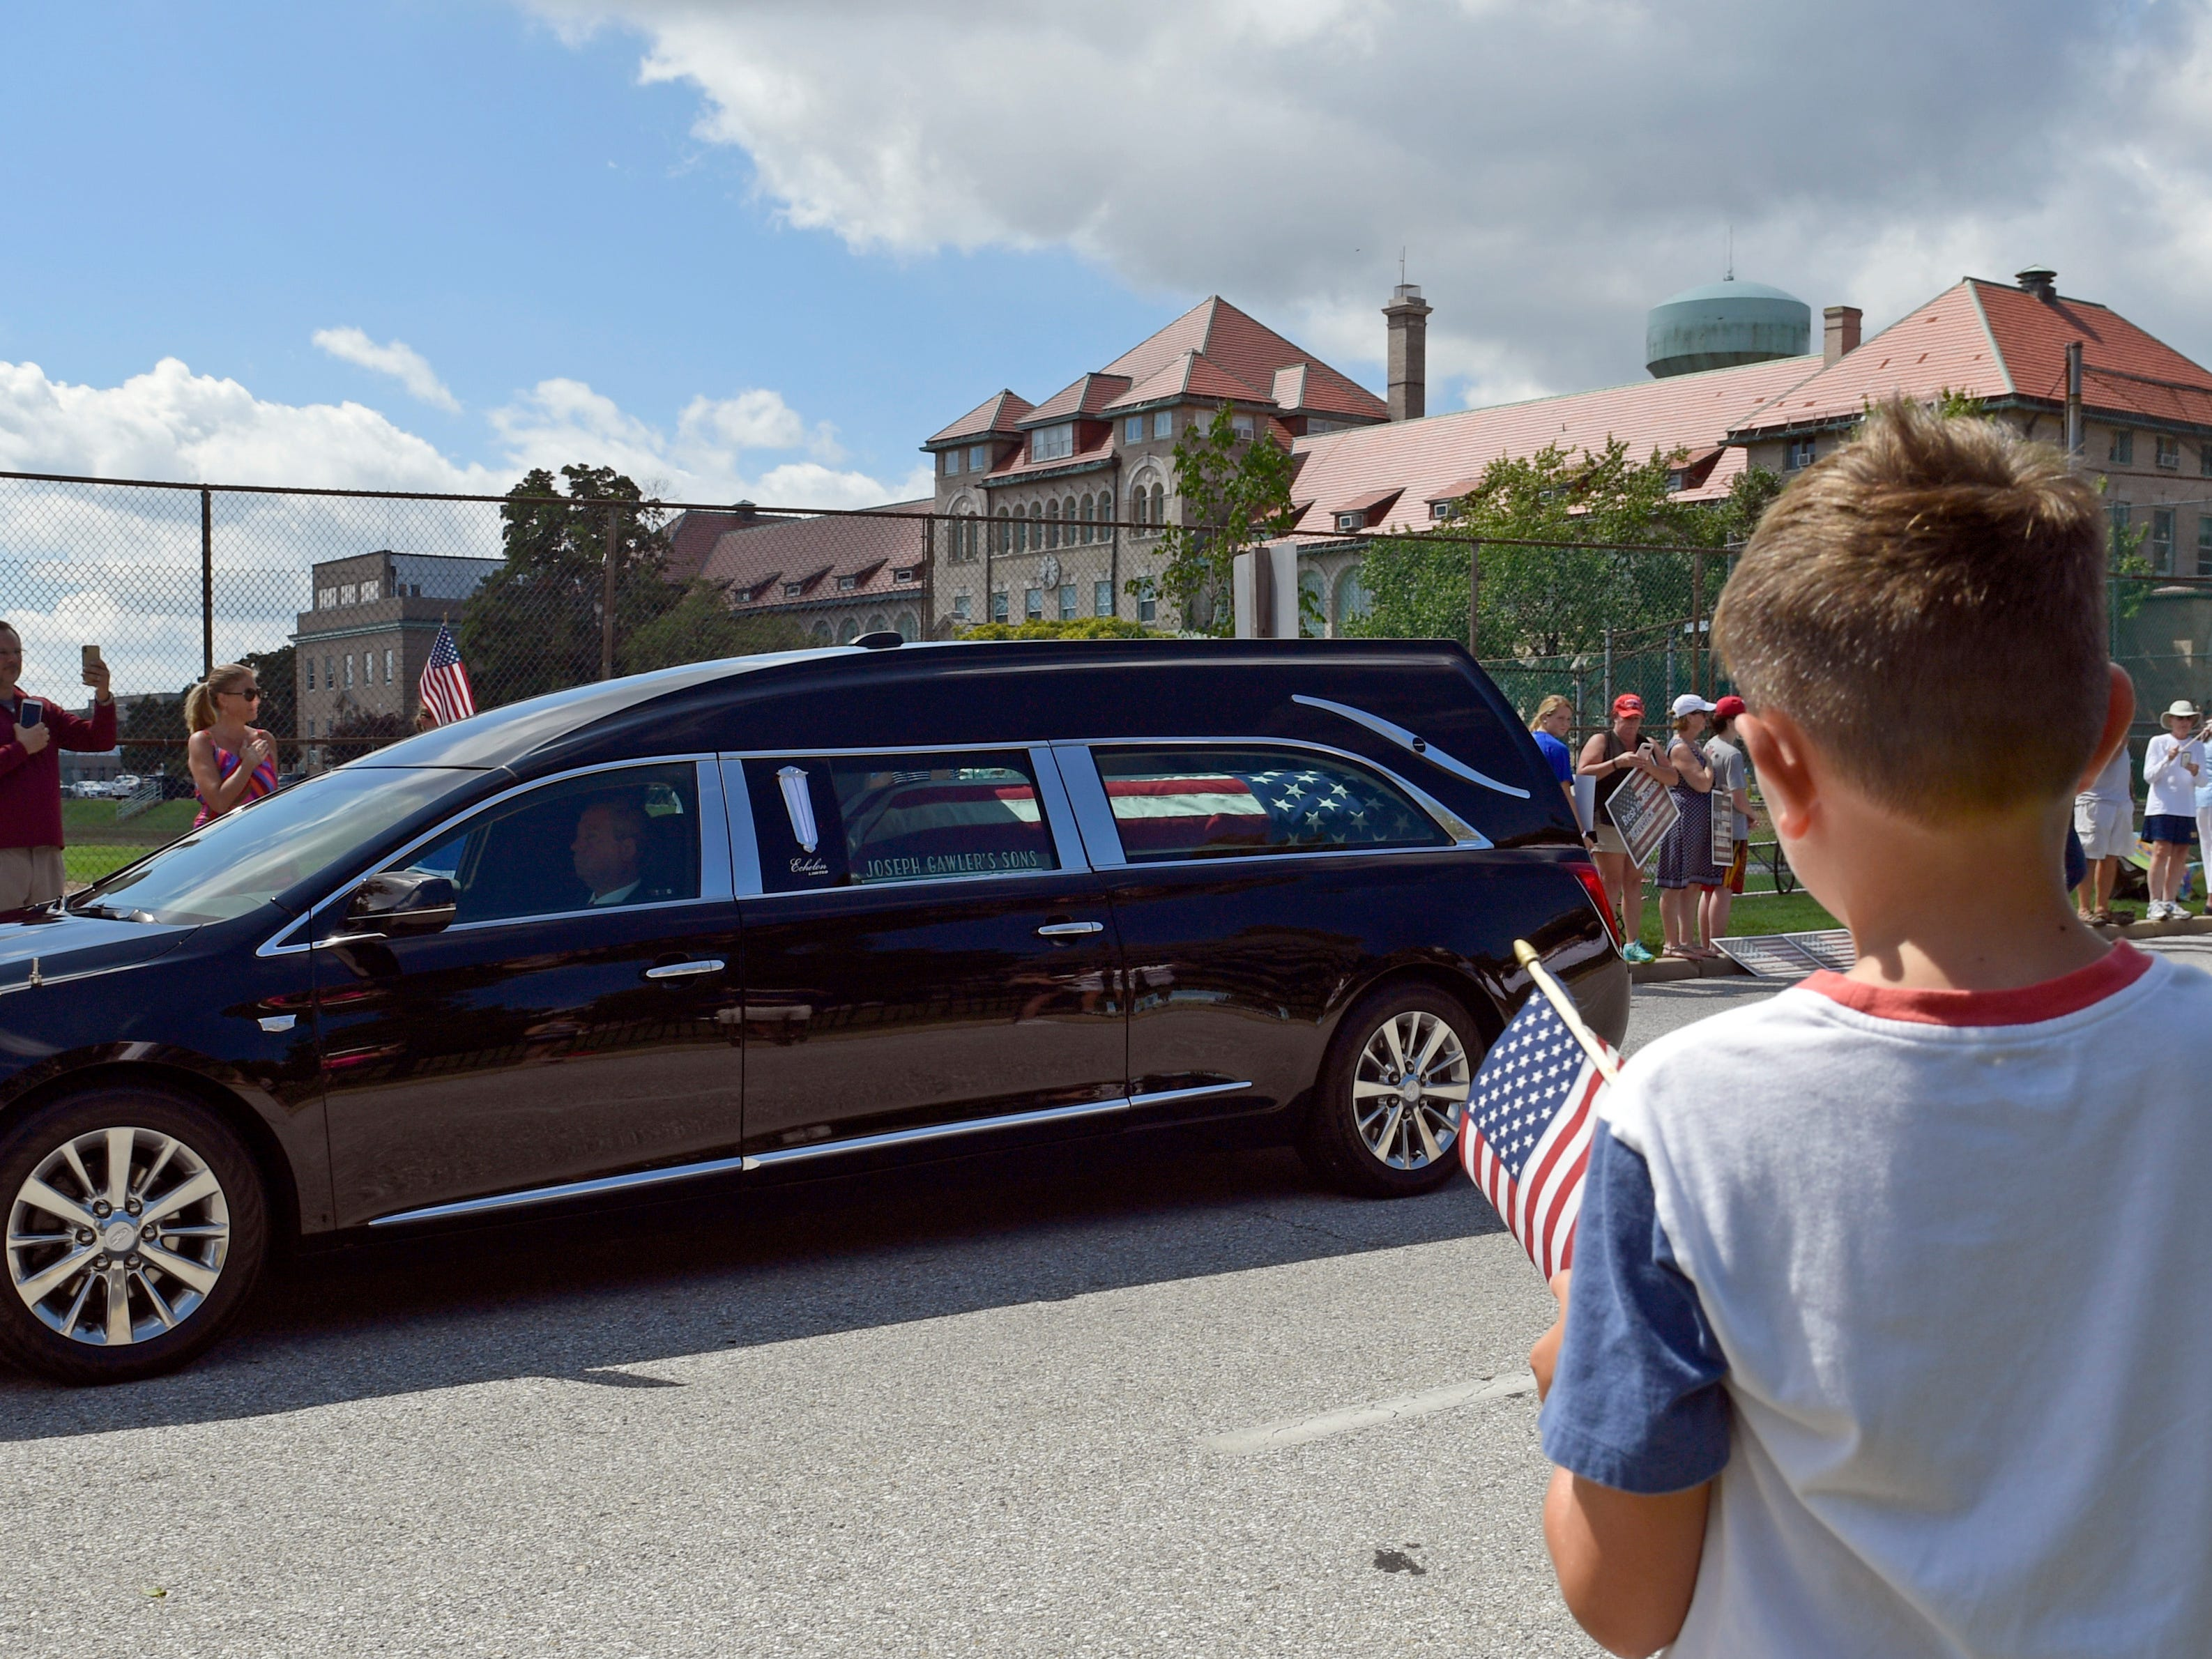 People watch as the funeral procession for Sen. John McCain arrives at the United States Naval Academy in Annapolis, Maryland, Sept. 2, 2018, for his funeral service and burial. McCain died Aug. 25 from brain cancer at age 81.